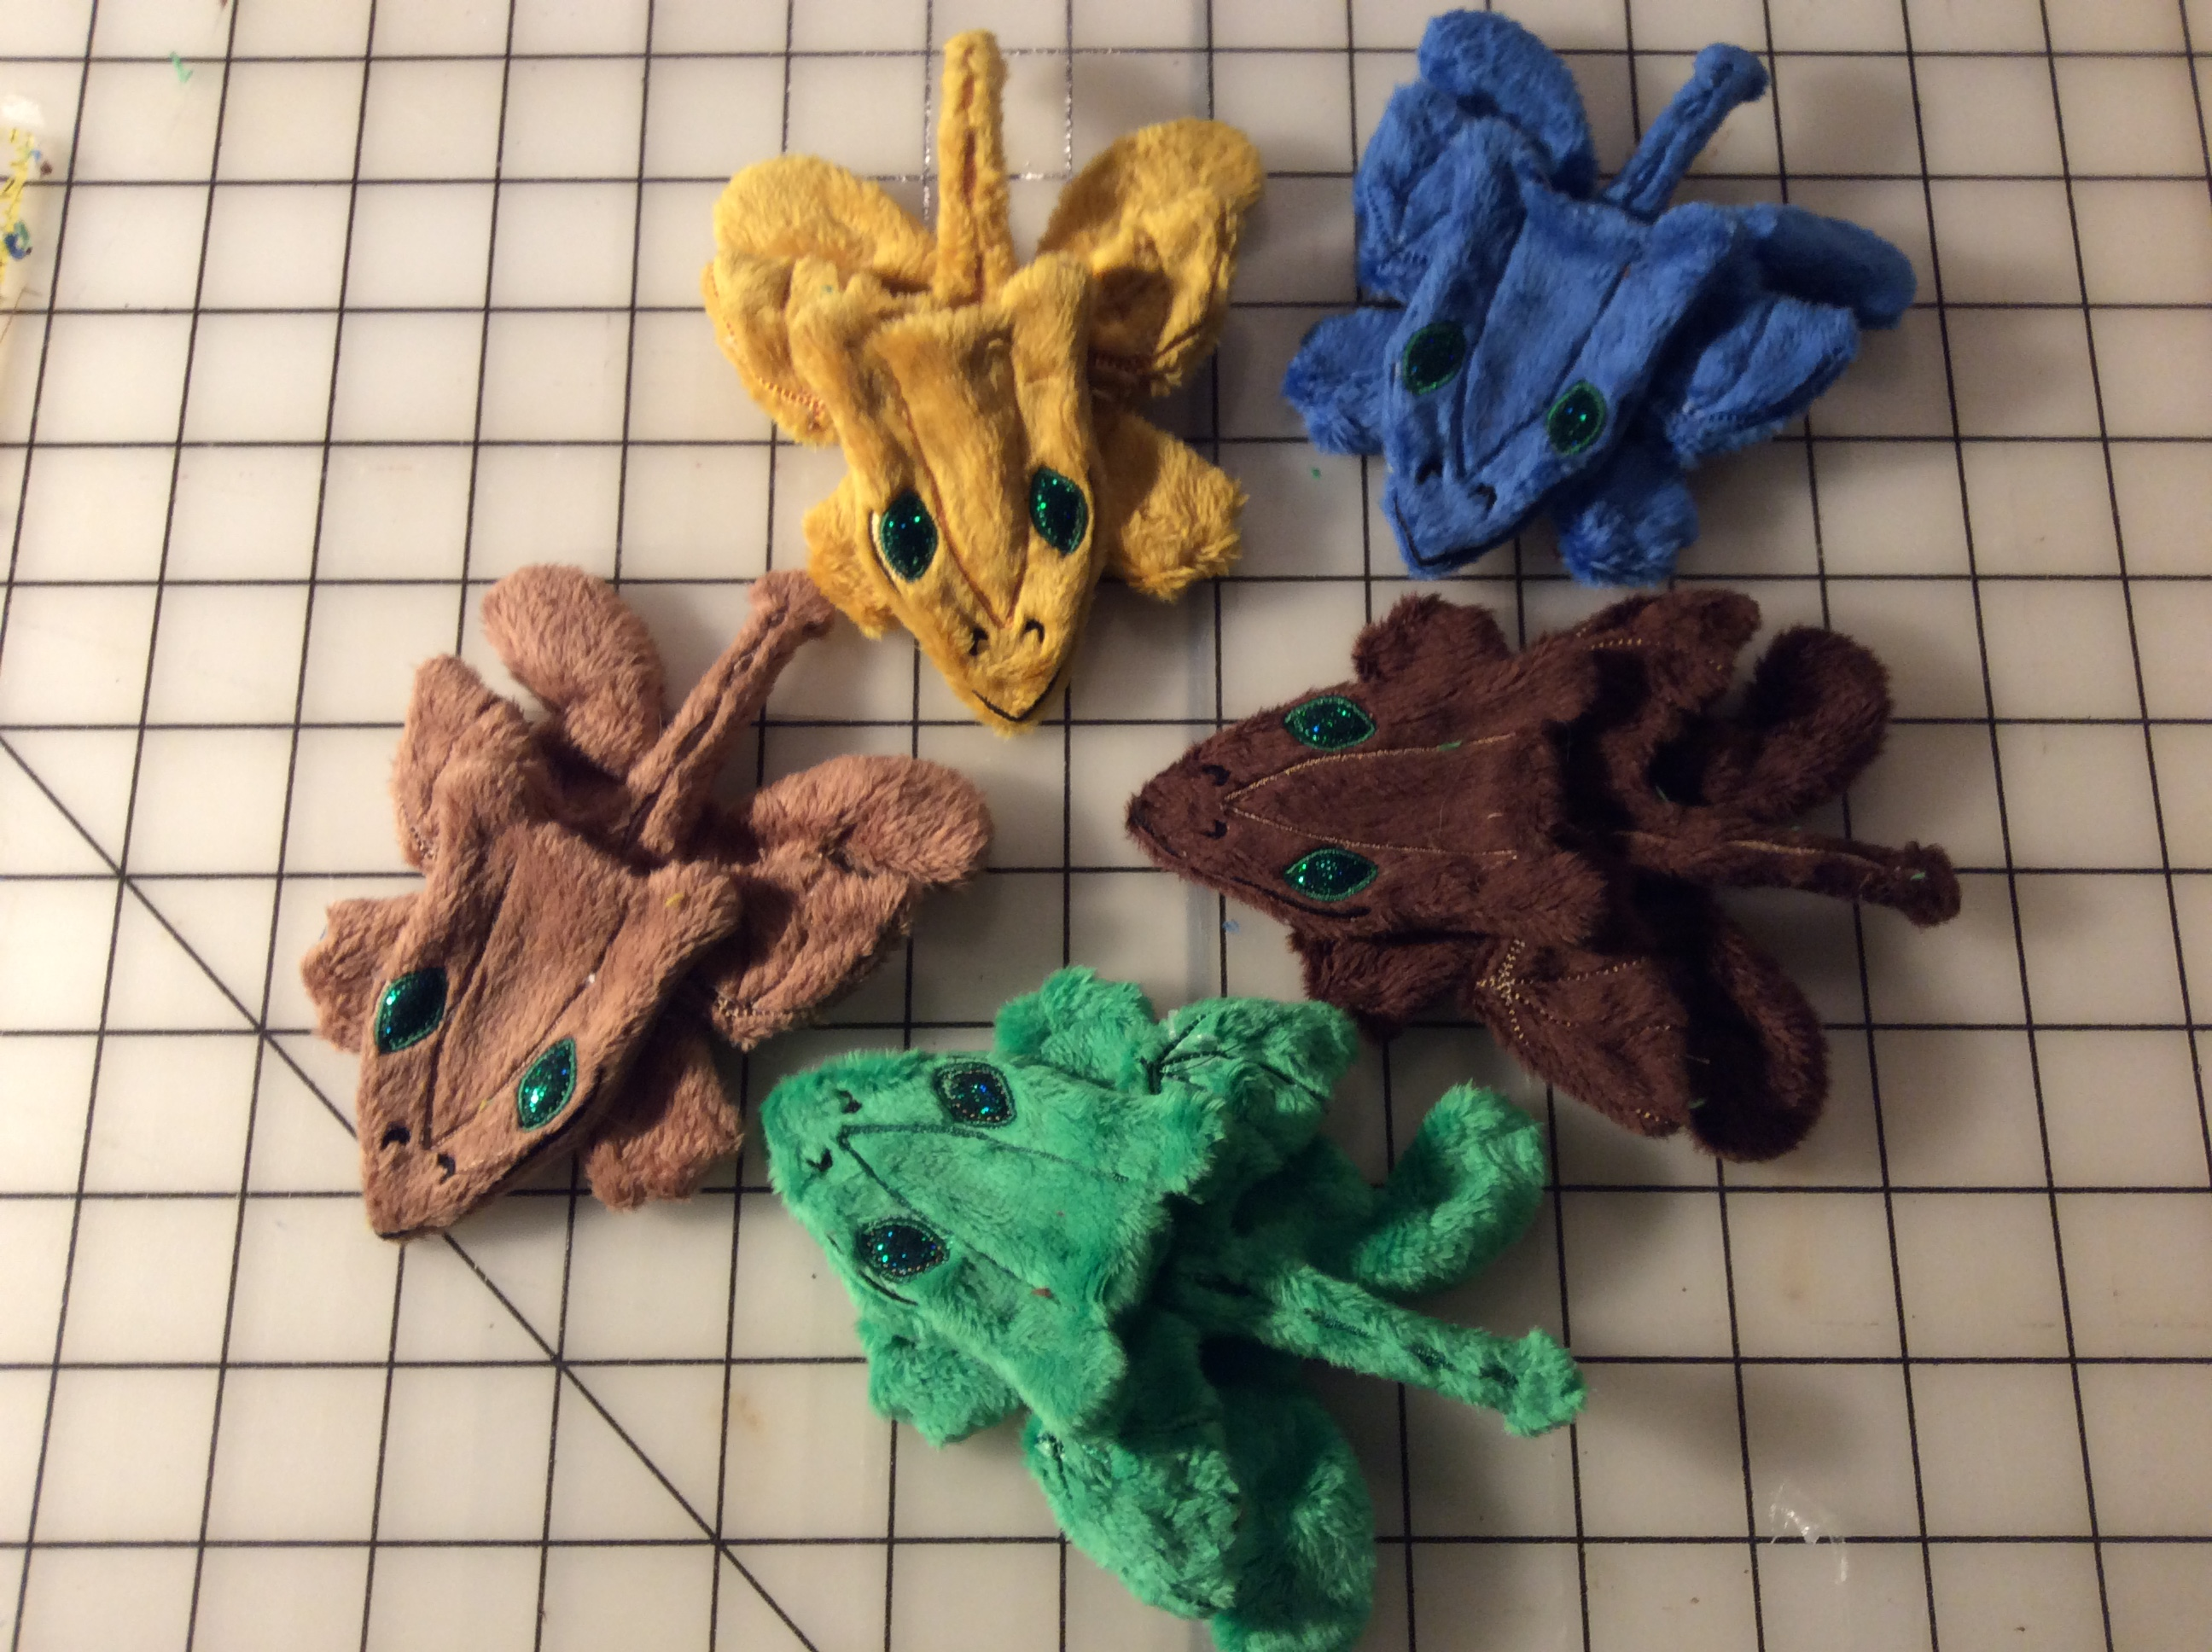 Five plush dragons, awaiting stuffing.